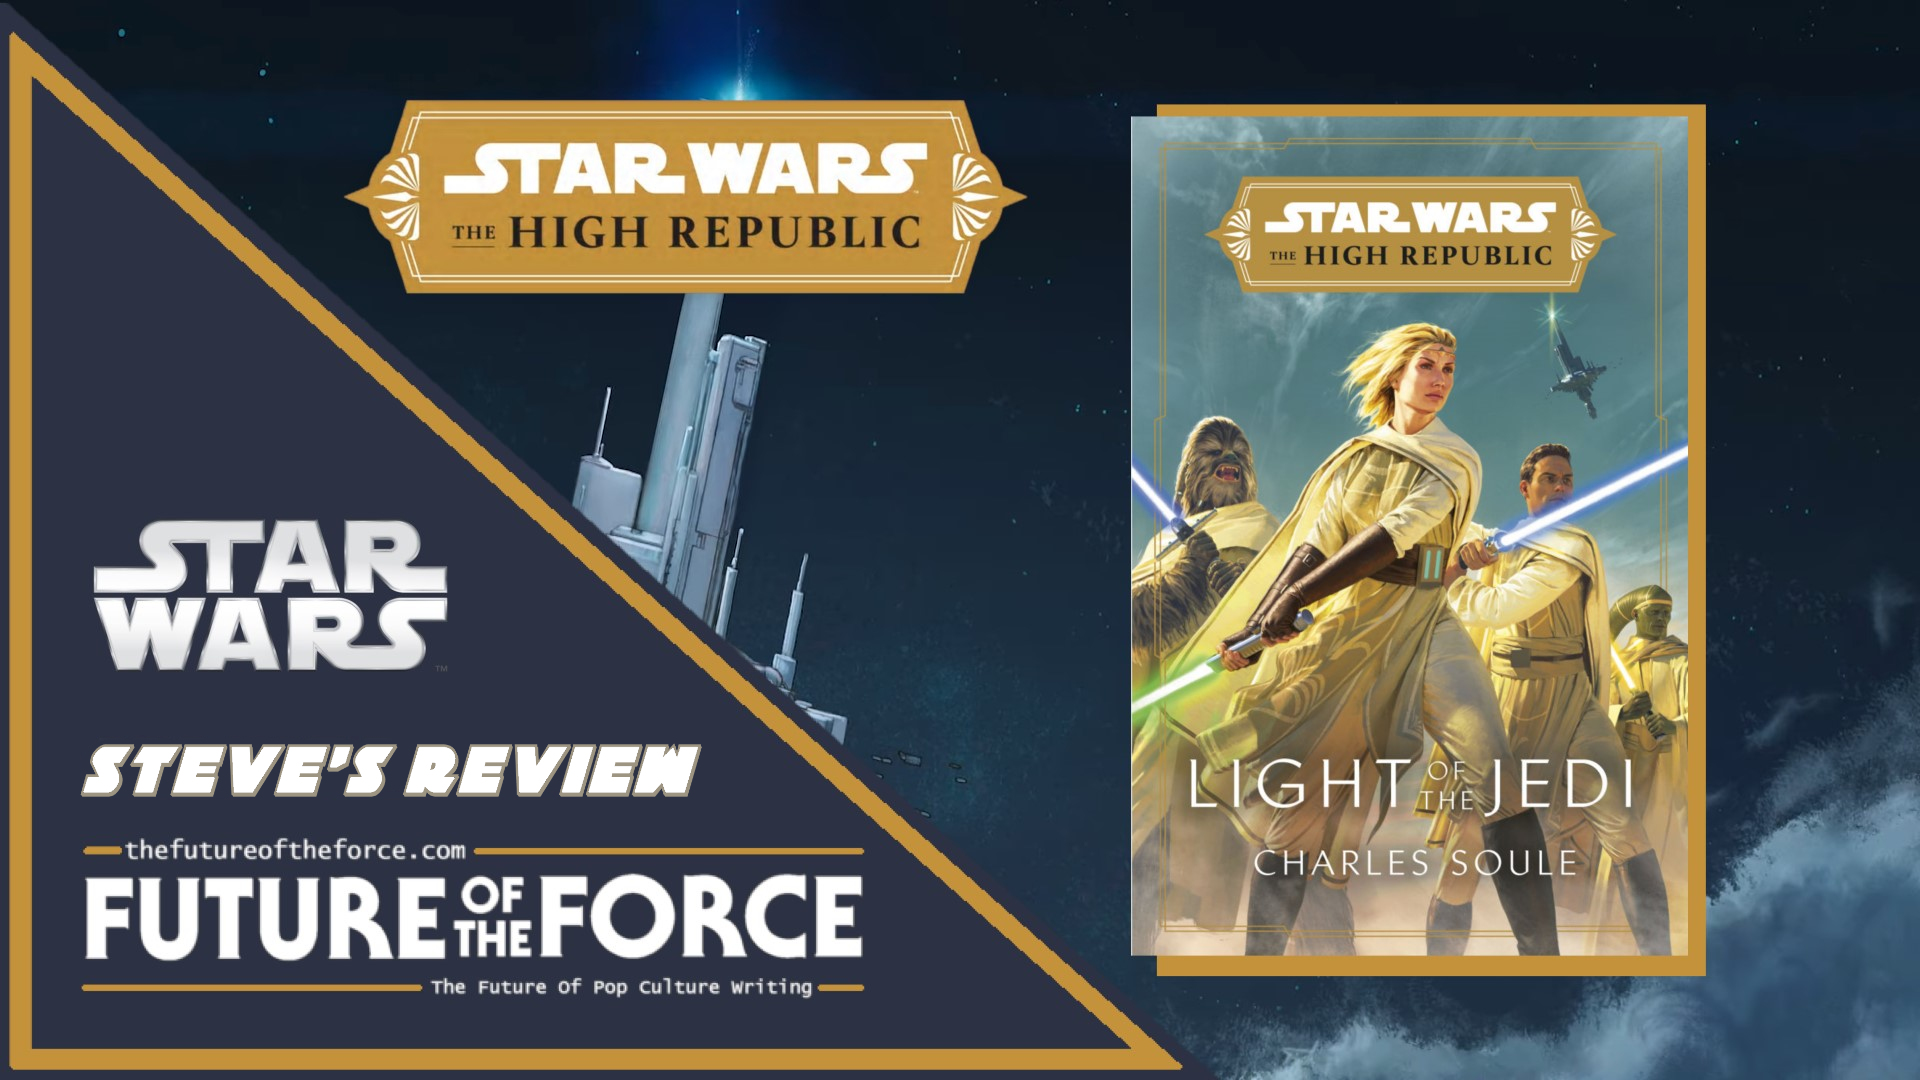 The High Republic - Light Of The Jedi Review 2